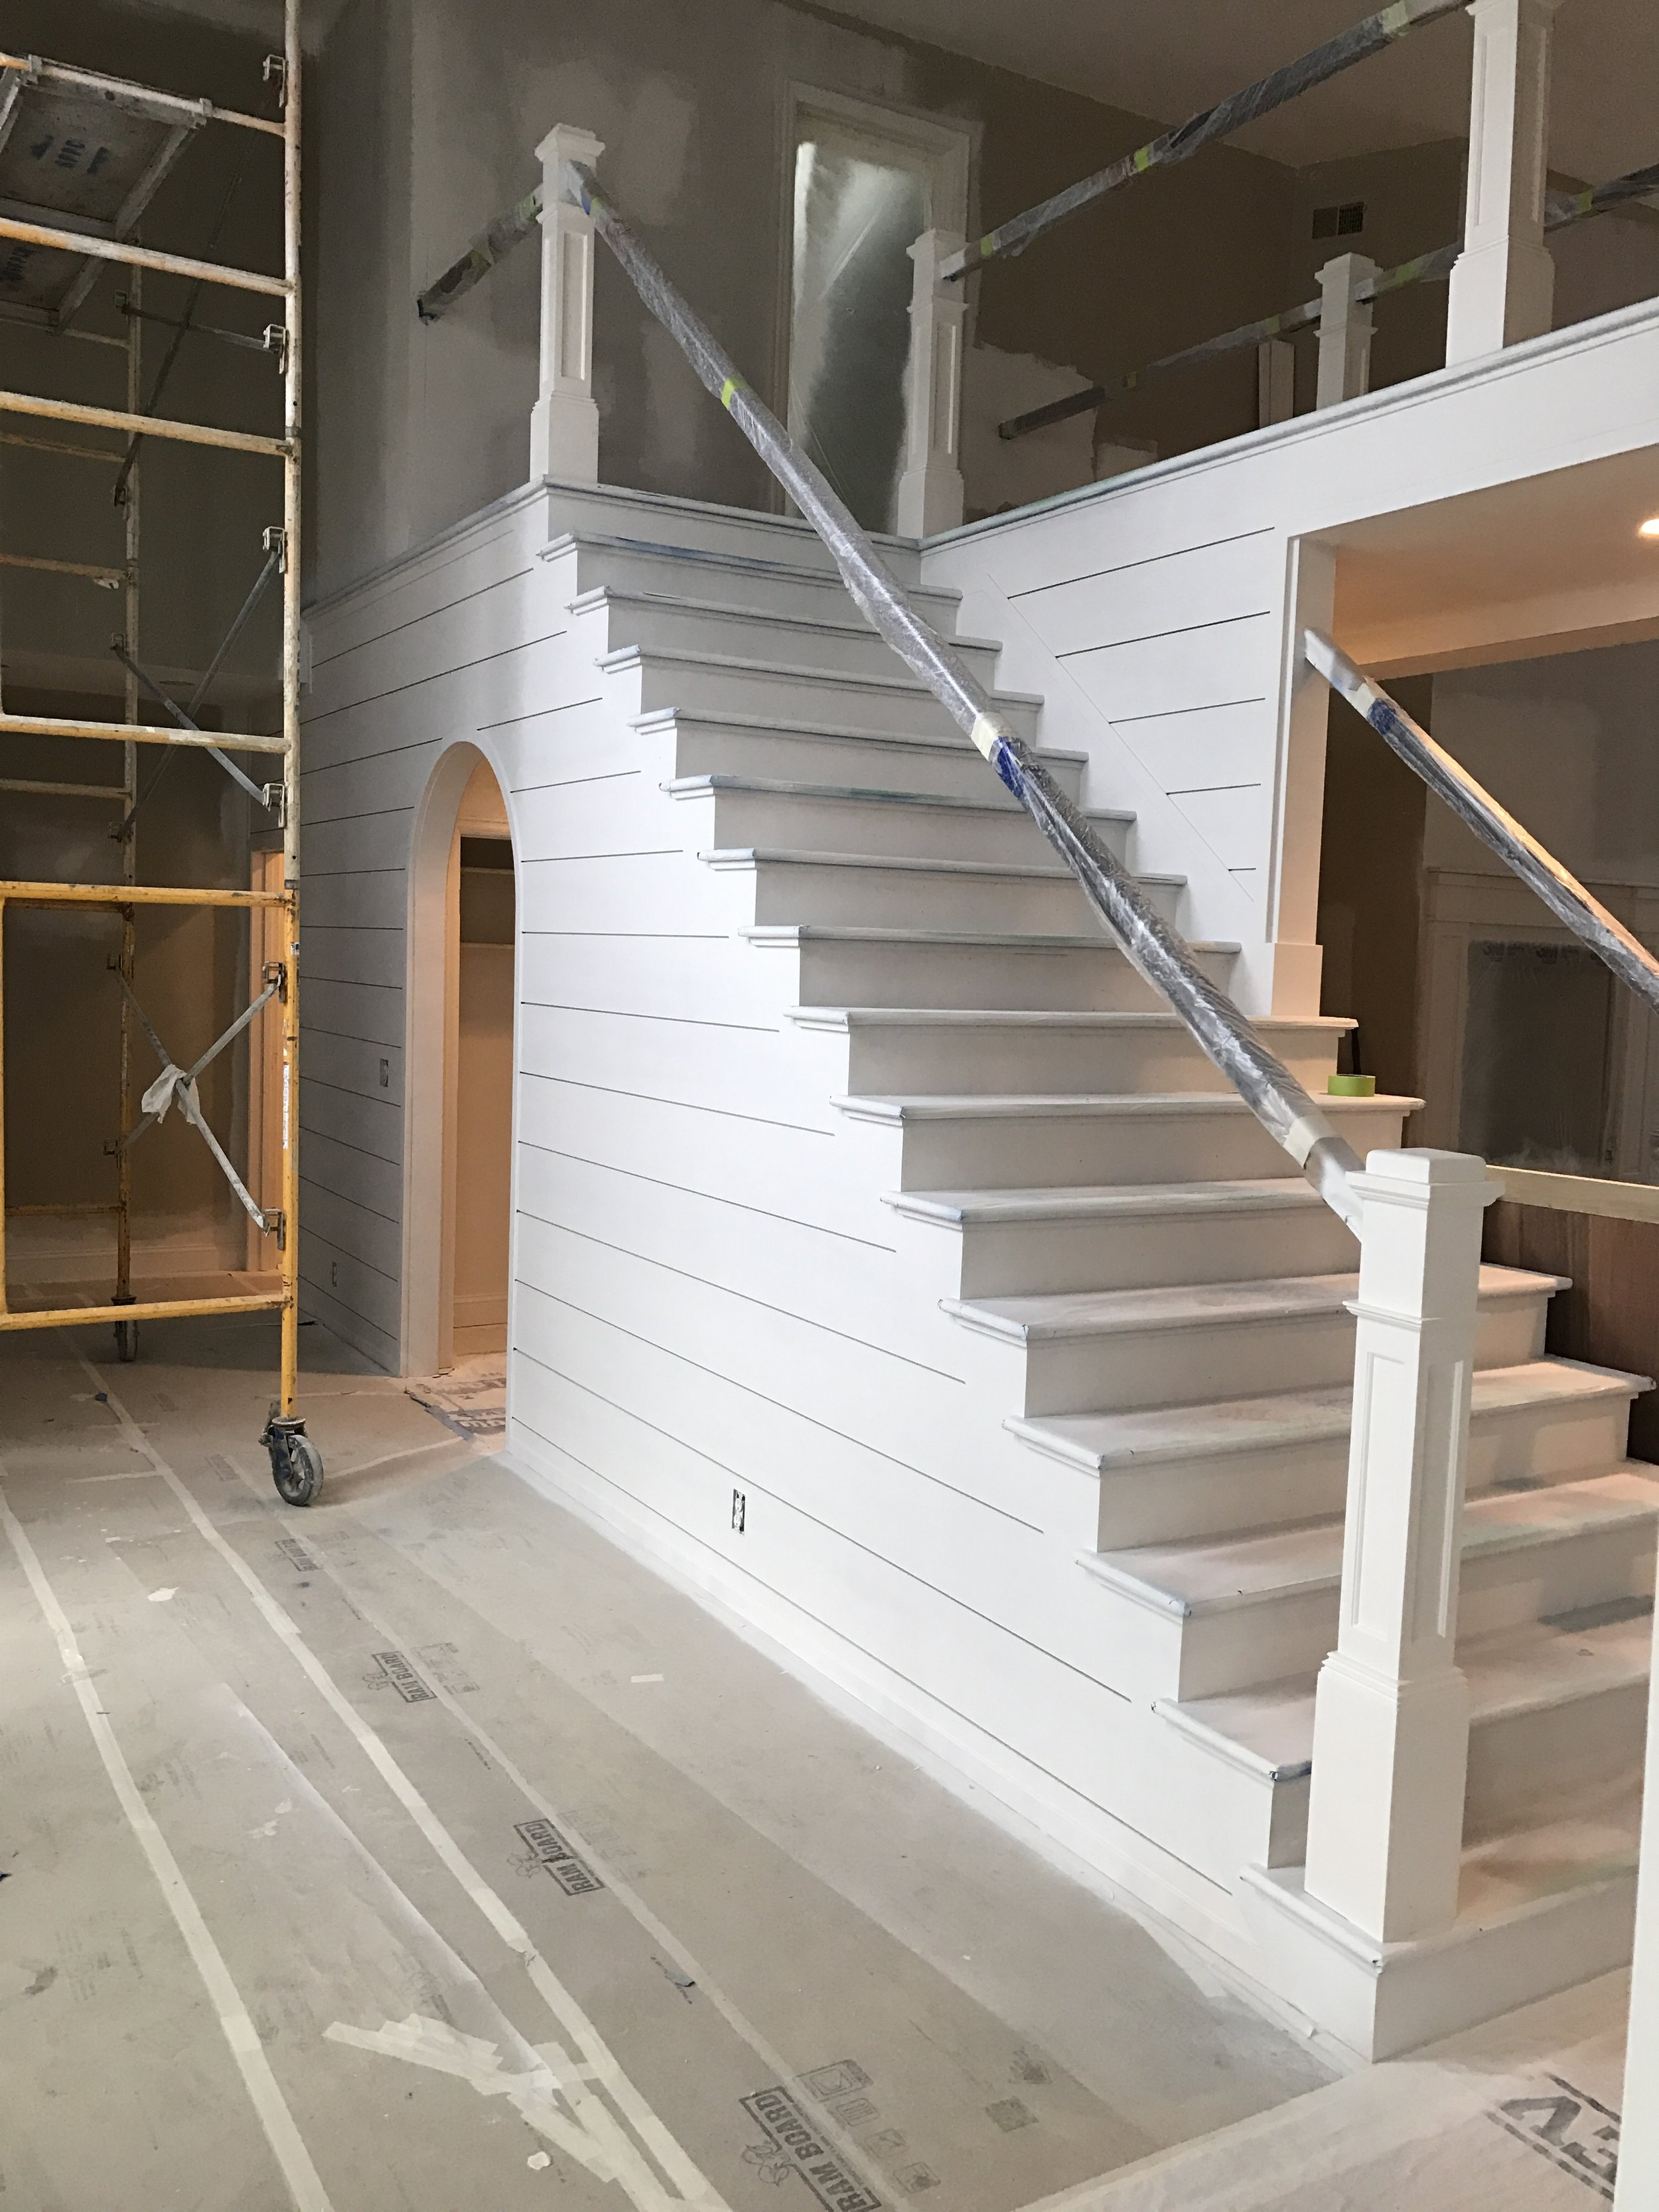 Shiplap foyer and stairwell walls with open-tread stairway primed.